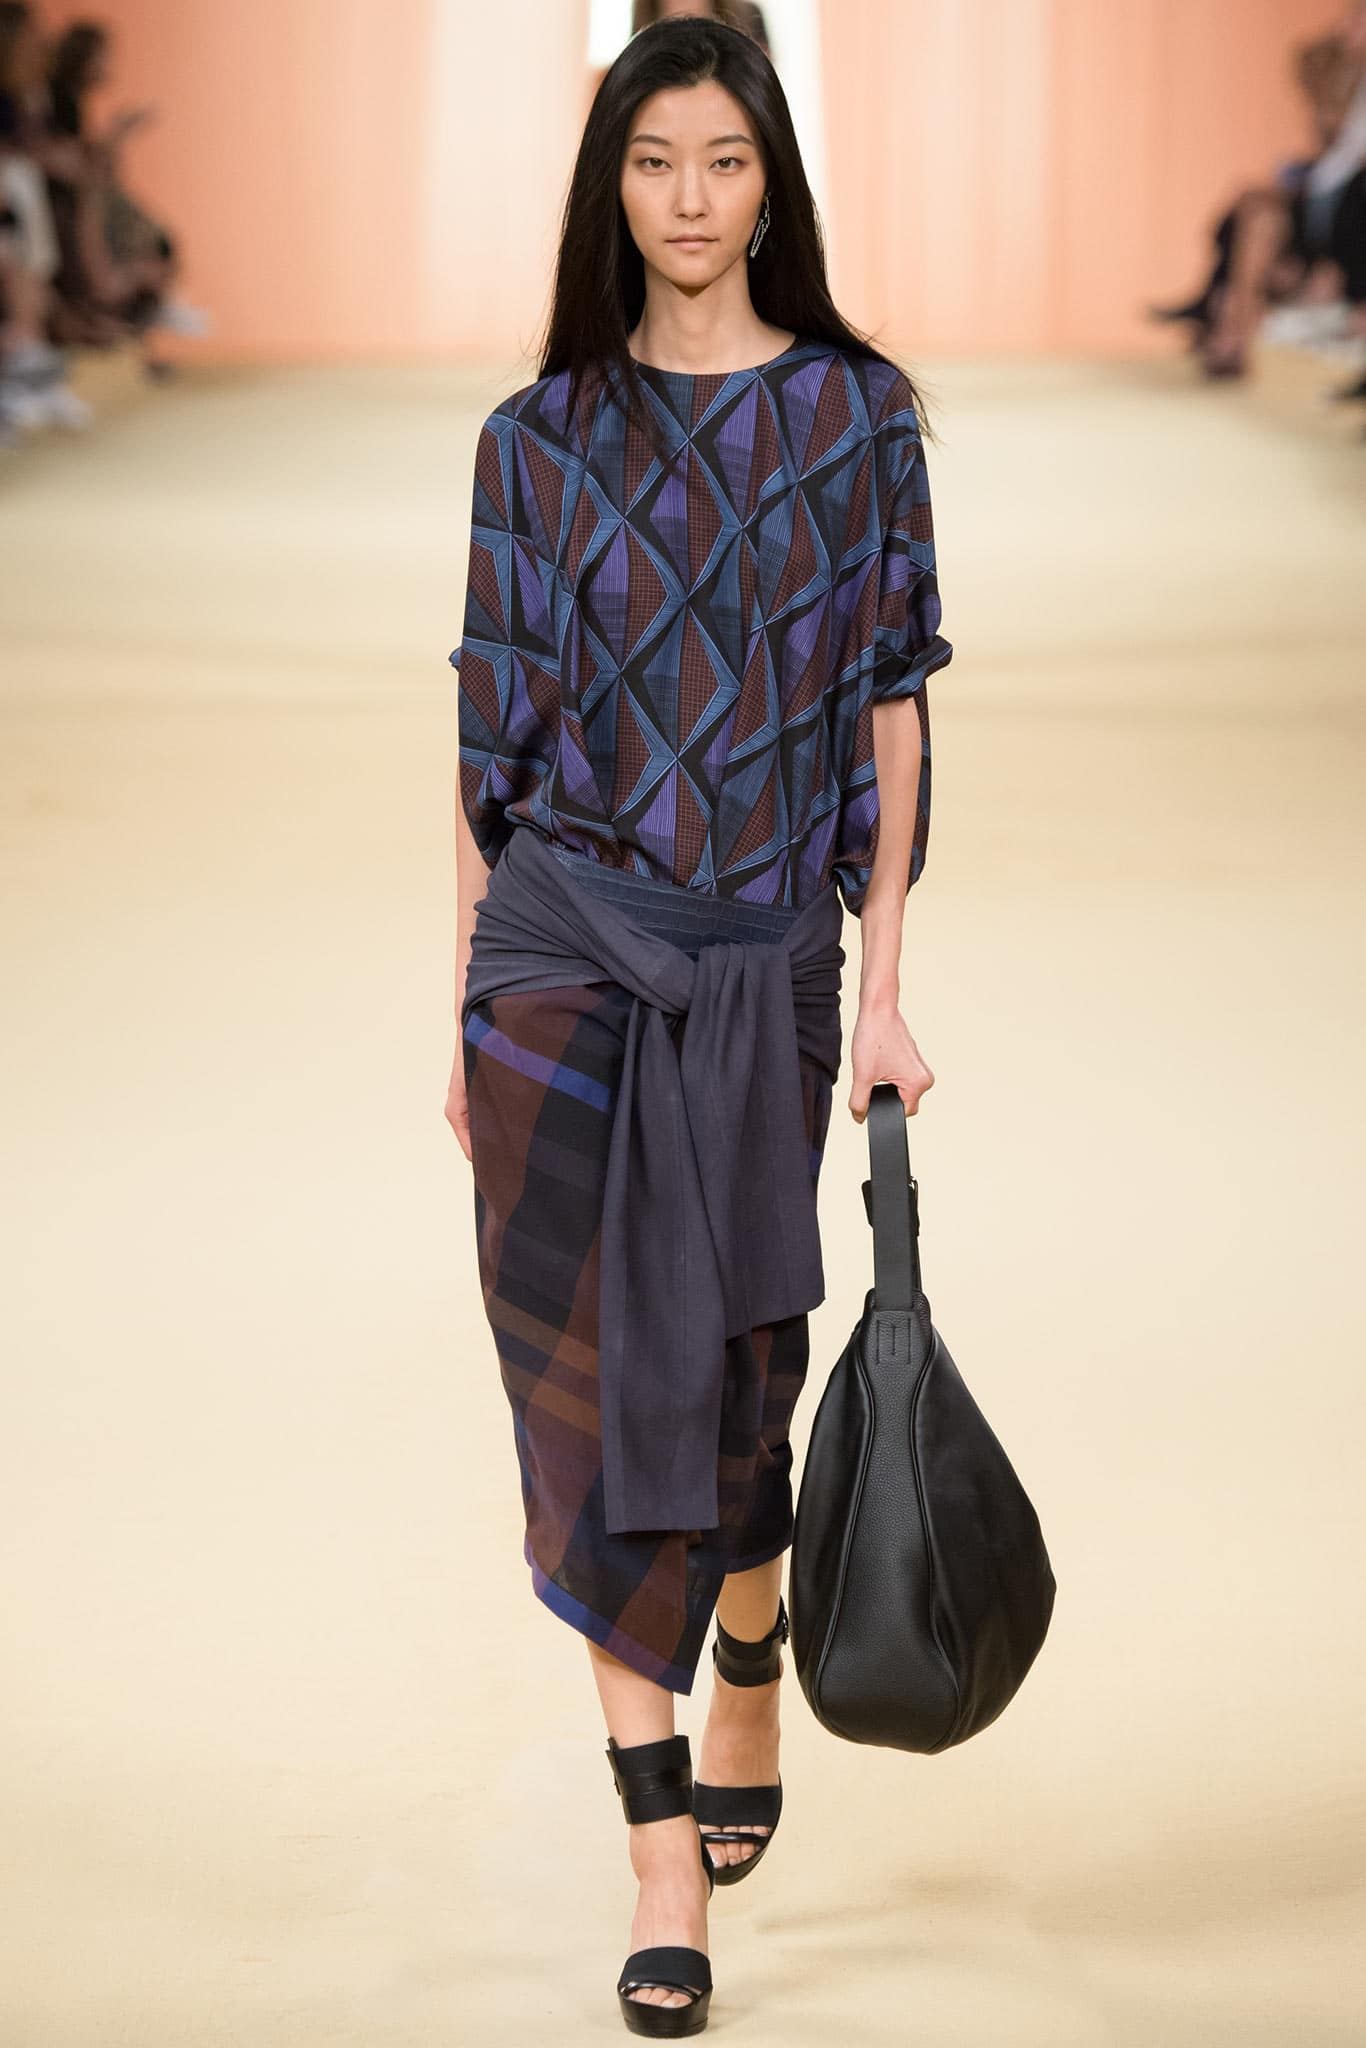 Hermes Spring / Summer 2015 Runway Bag Collection